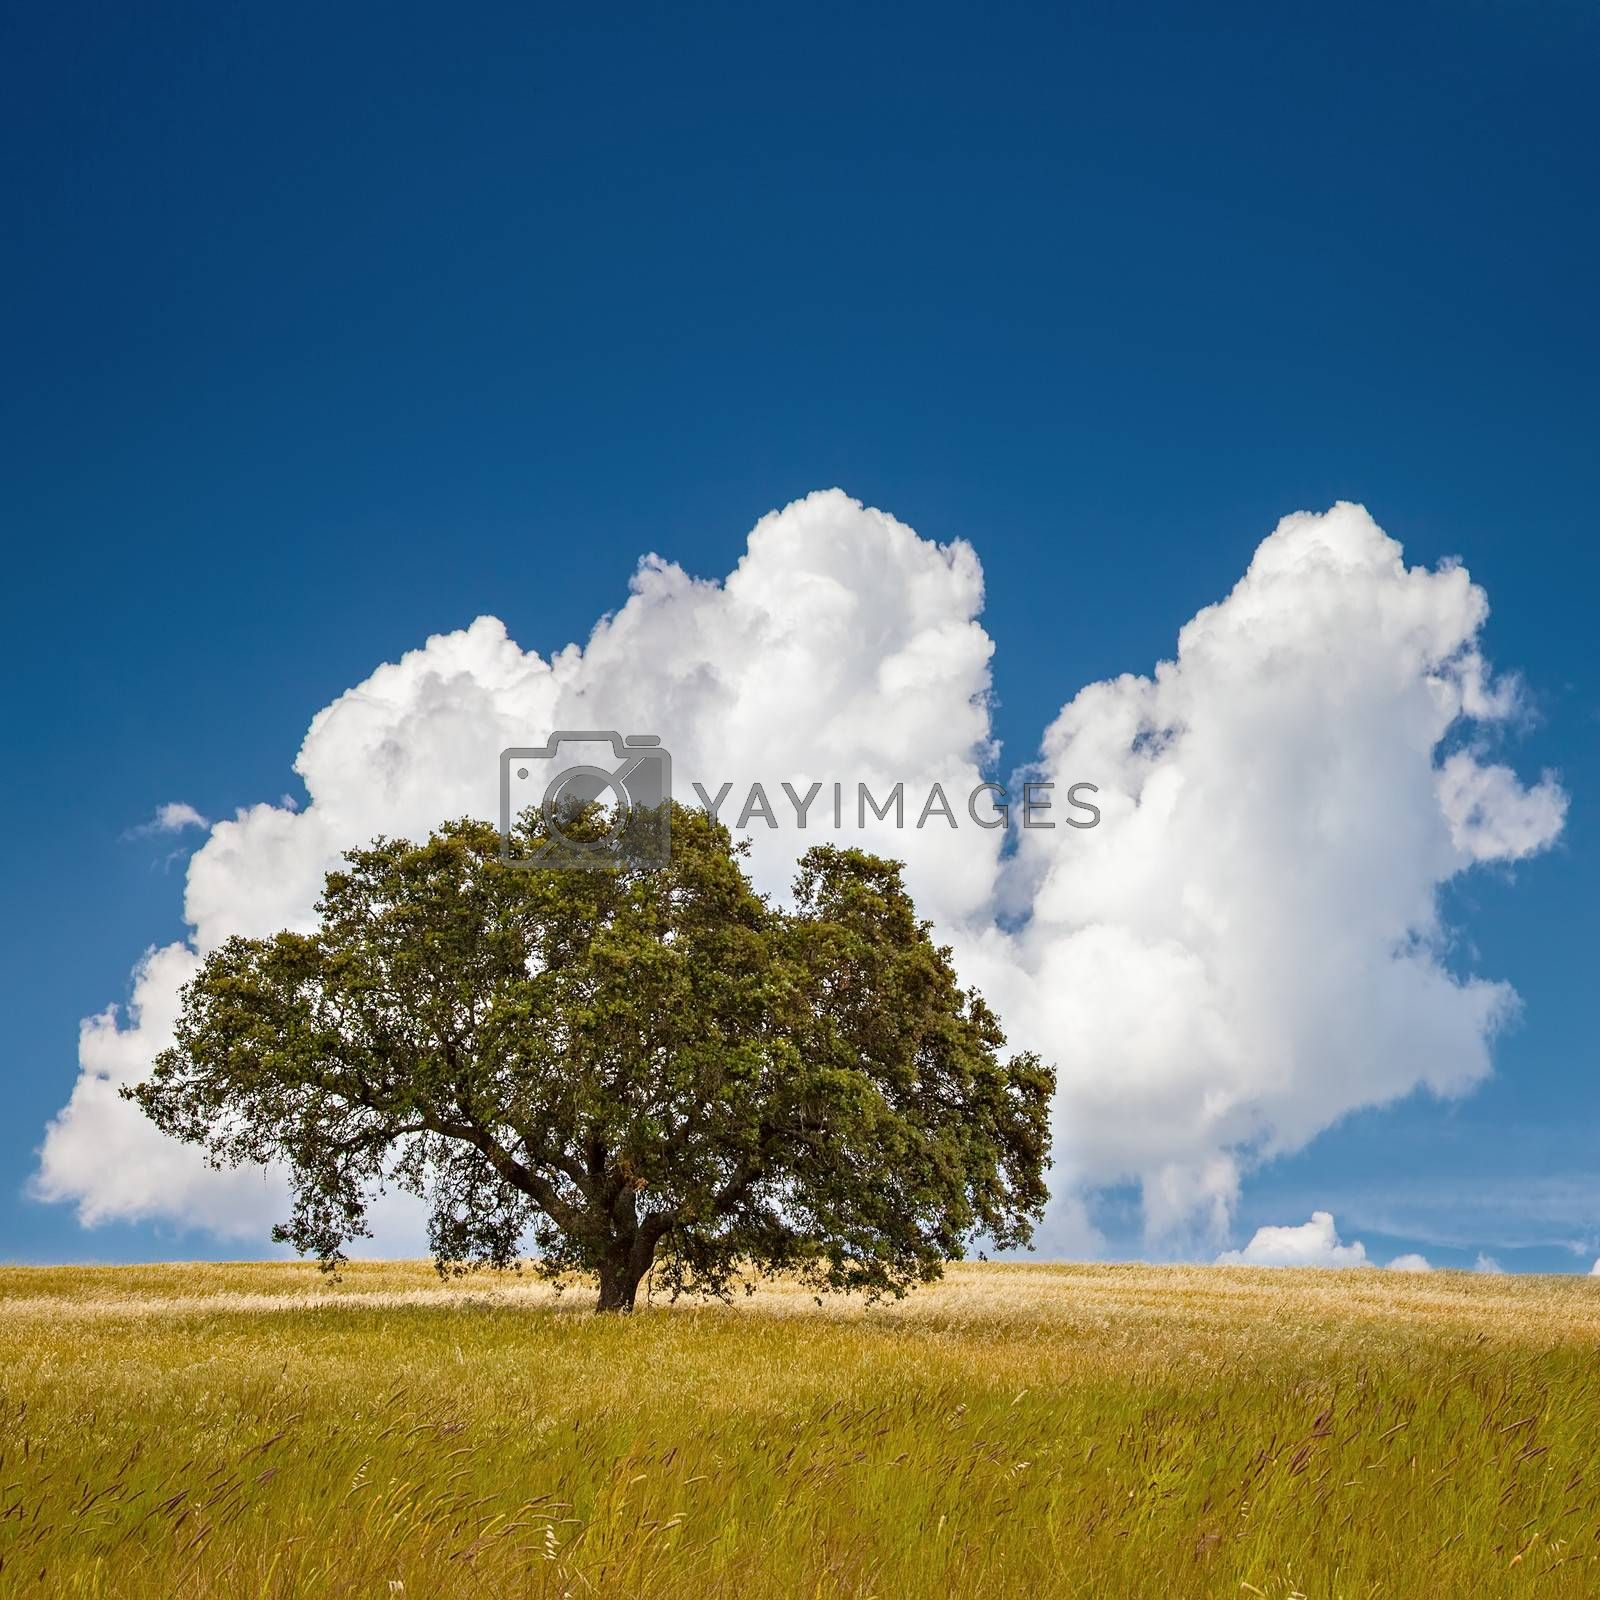 Lonely tree on farm field with blue sky and fluffy clouds.